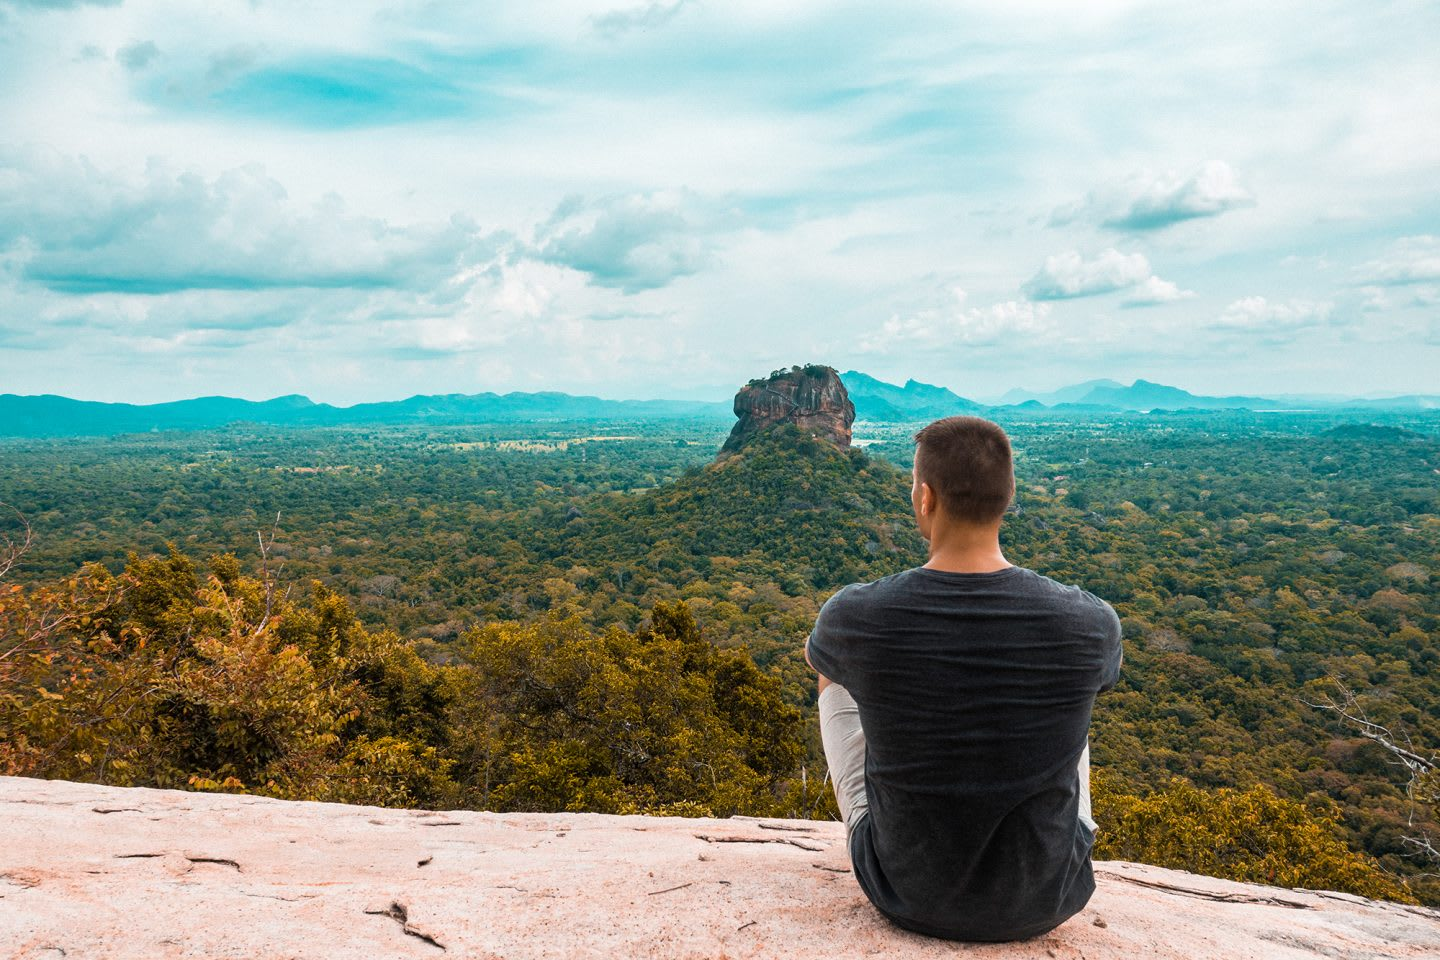 Man sitting on the edge of a canyon while enjoying the view